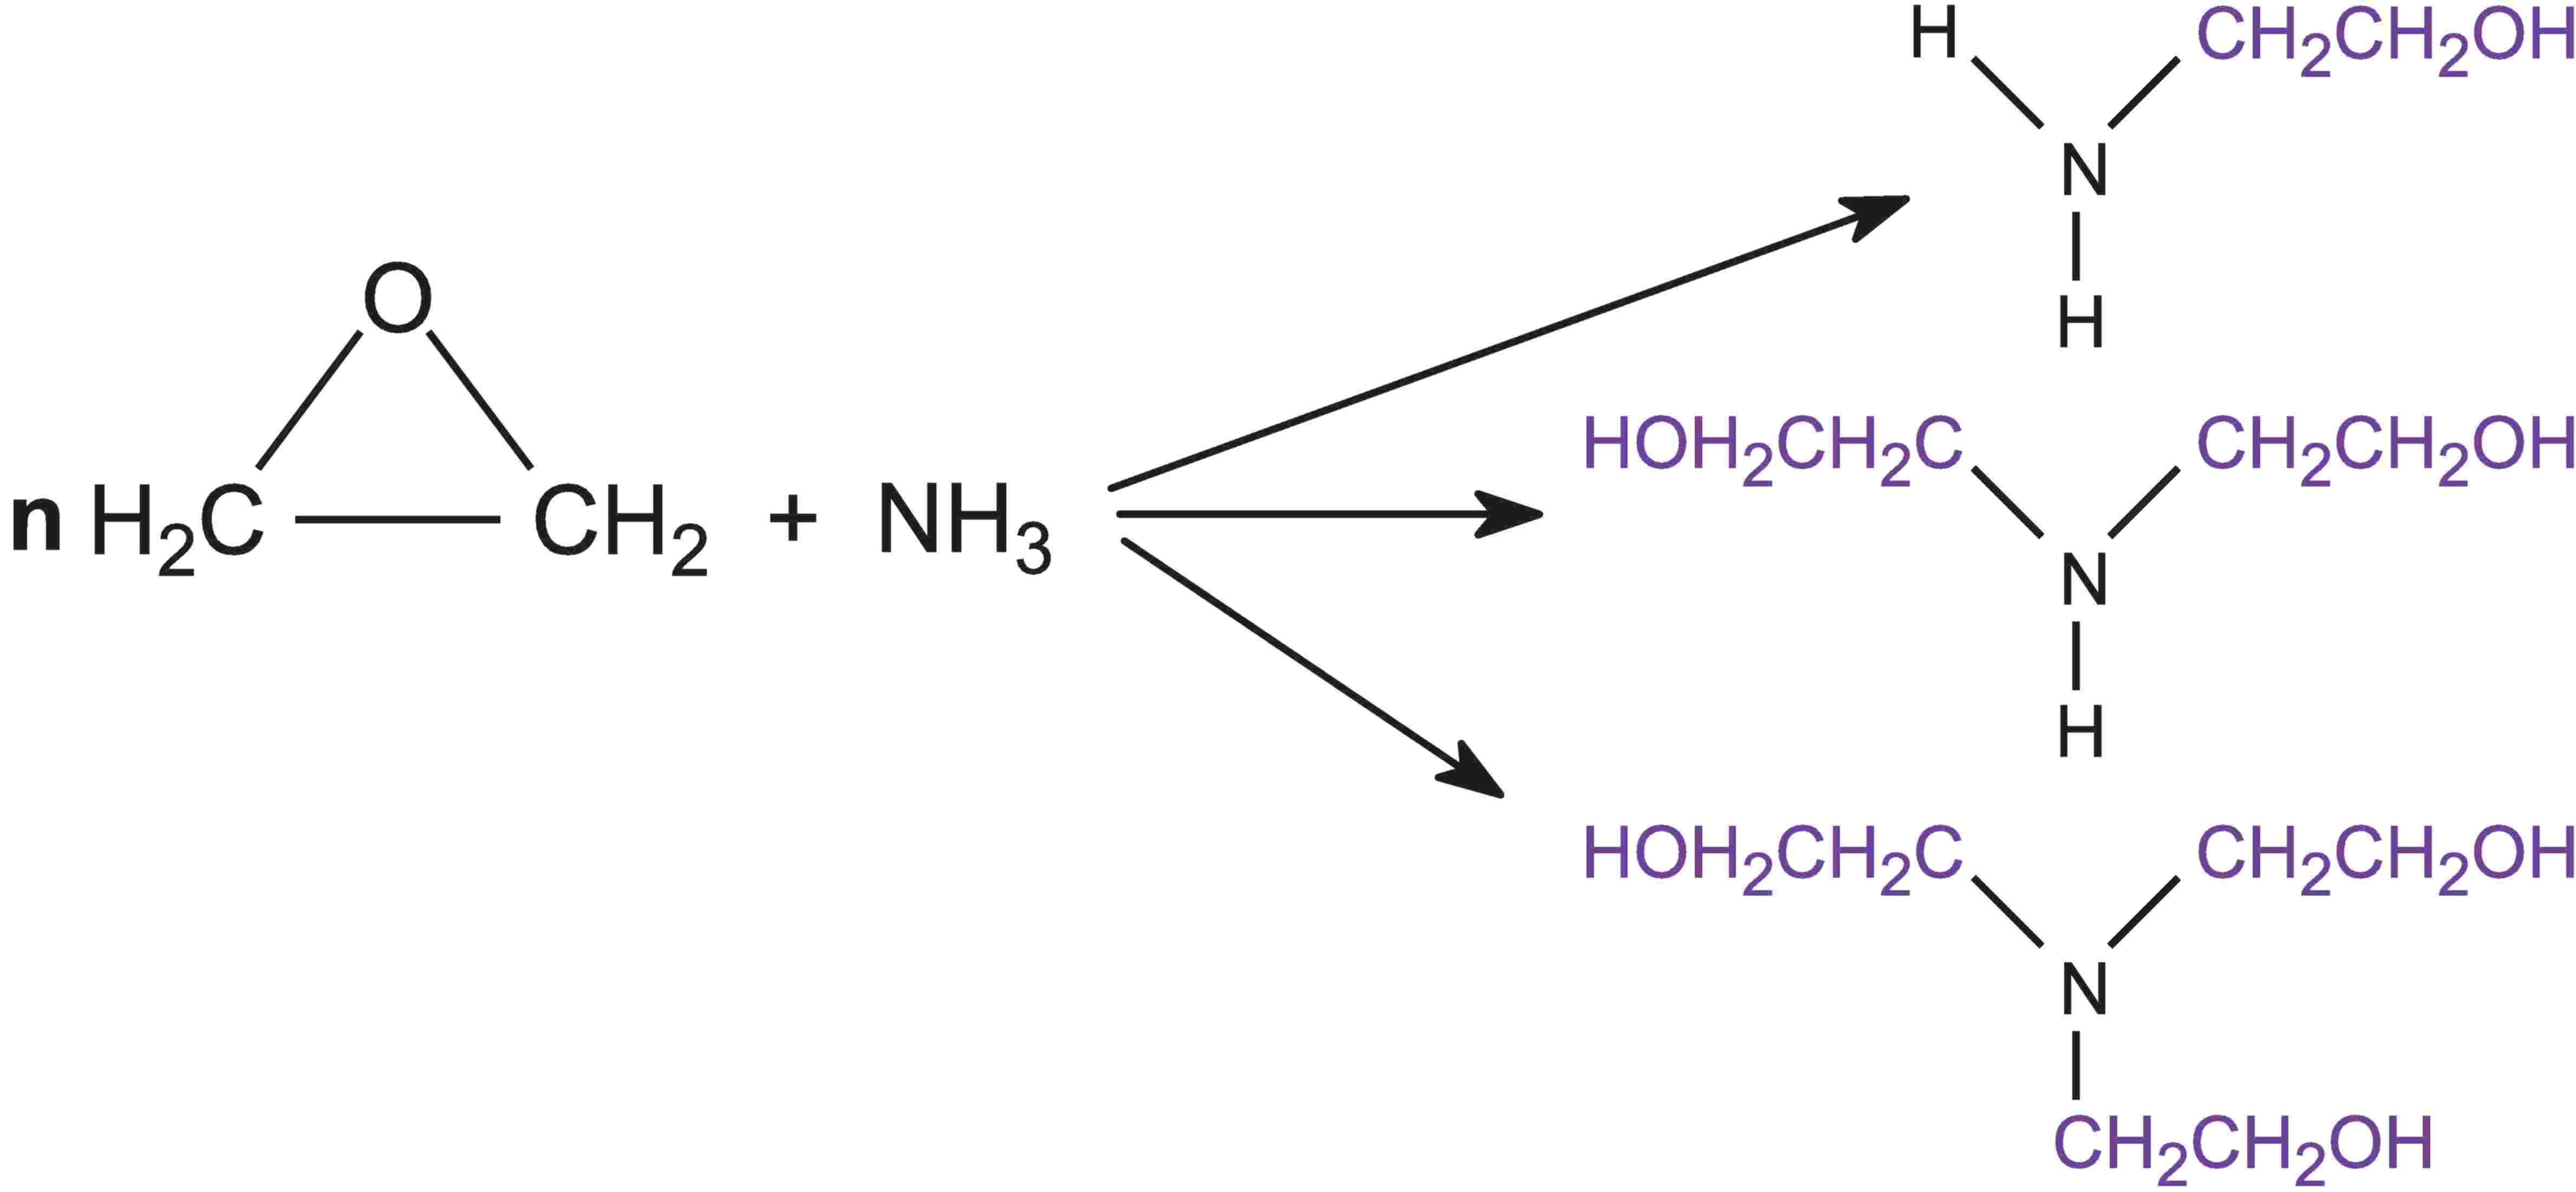 Equations illustrating reactions of epoxyethane with ammonia to orm a series of ethanolamines